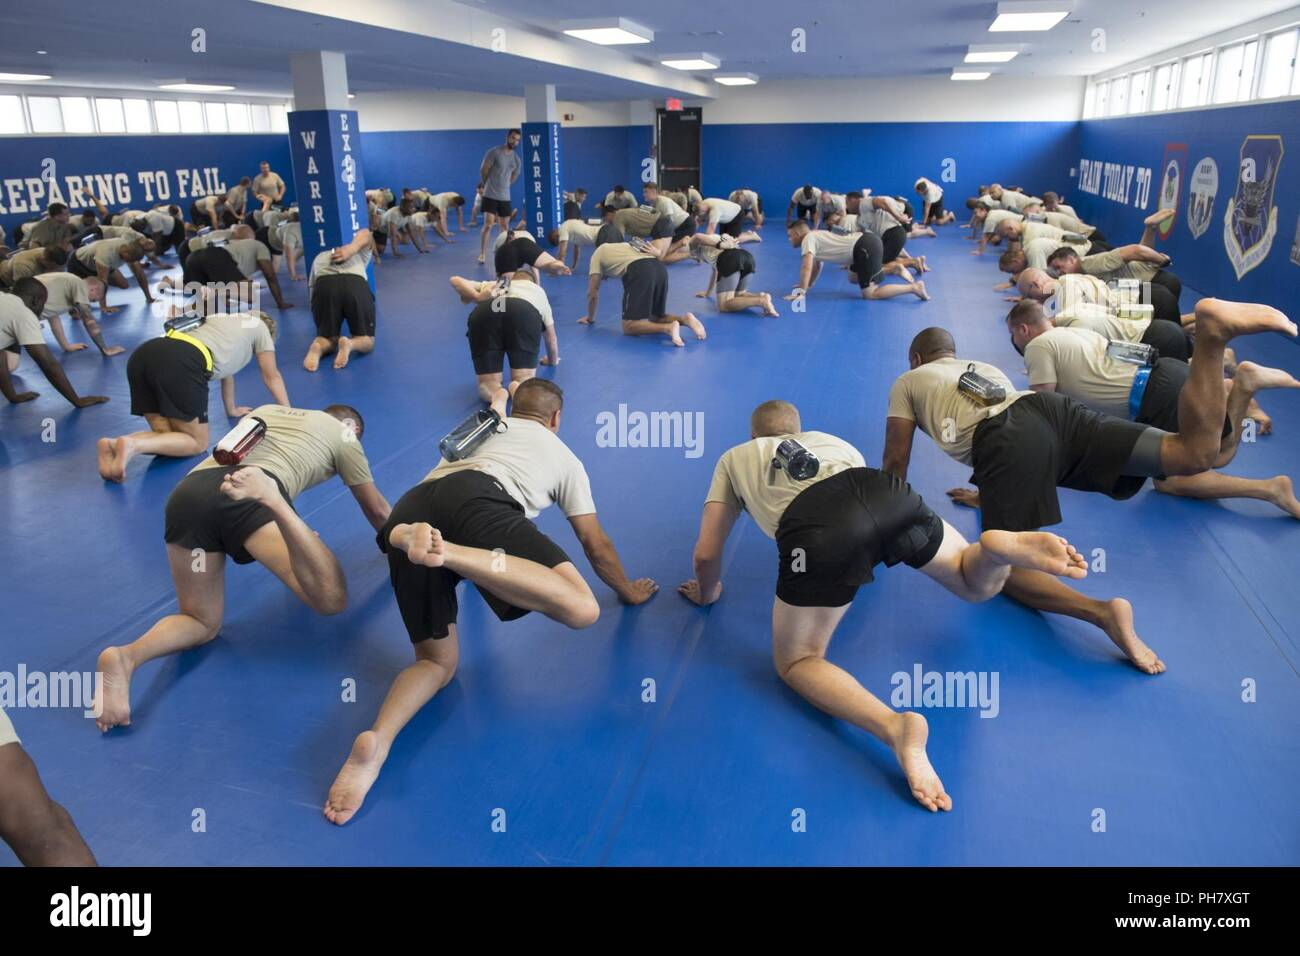 Special Operations Recruiters Experience Body Mobility Training